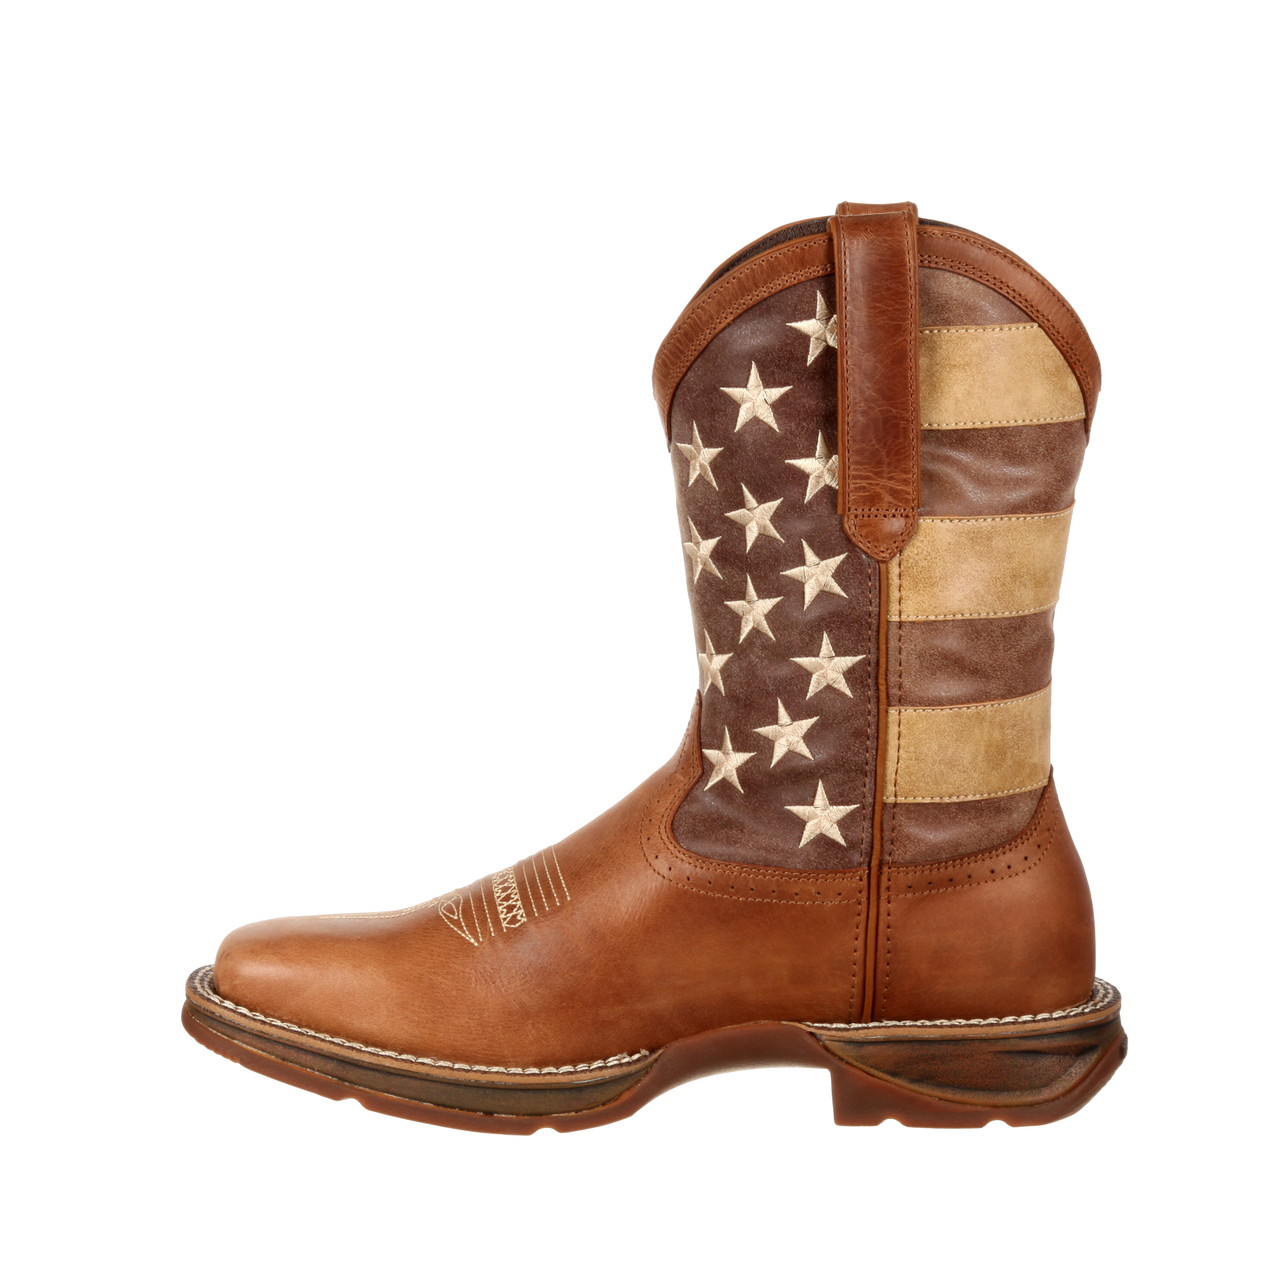 cceb11901c7 Durango Rebel Faded USA Flag Boots